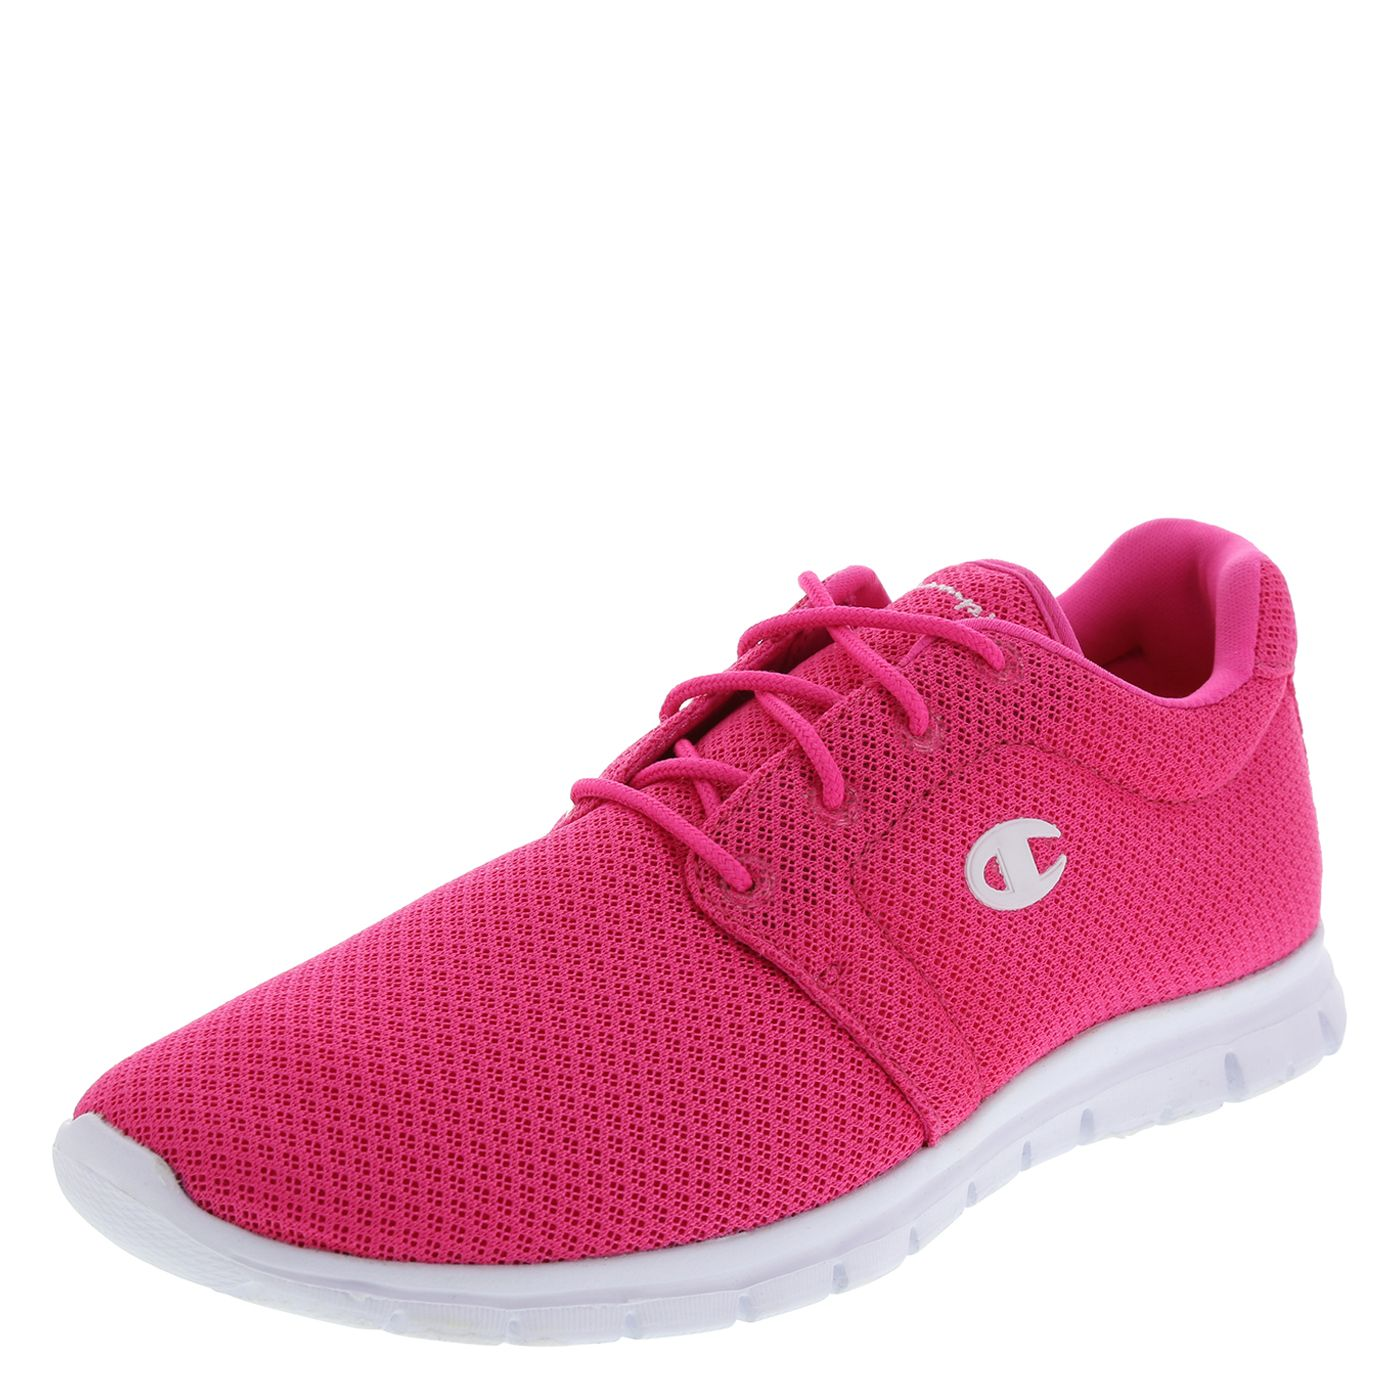 55c27b238ae84 payless.com Champion Women s Women s Ingage Runner (Color - Pink ...